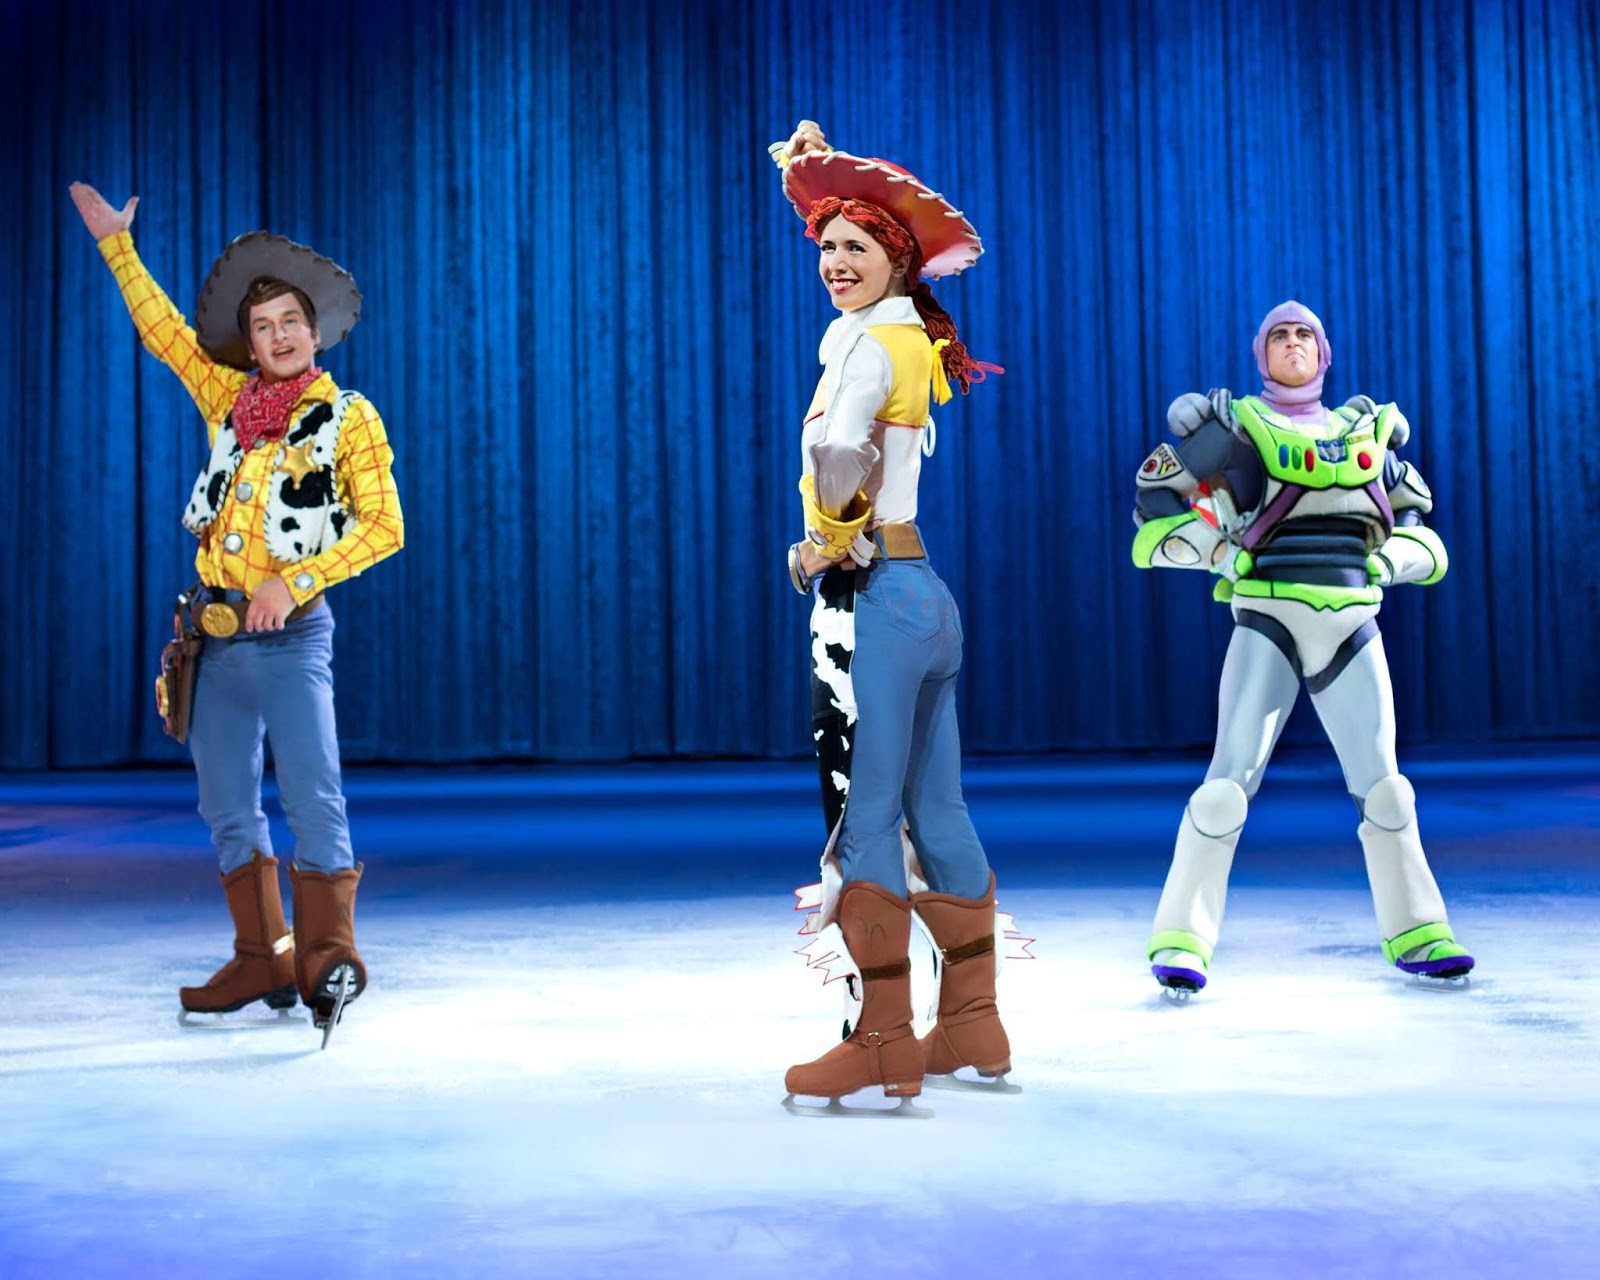 Disney On Ice Newcastle 2019 - How To Buy Pre-Sale Tickets  - Toy Story